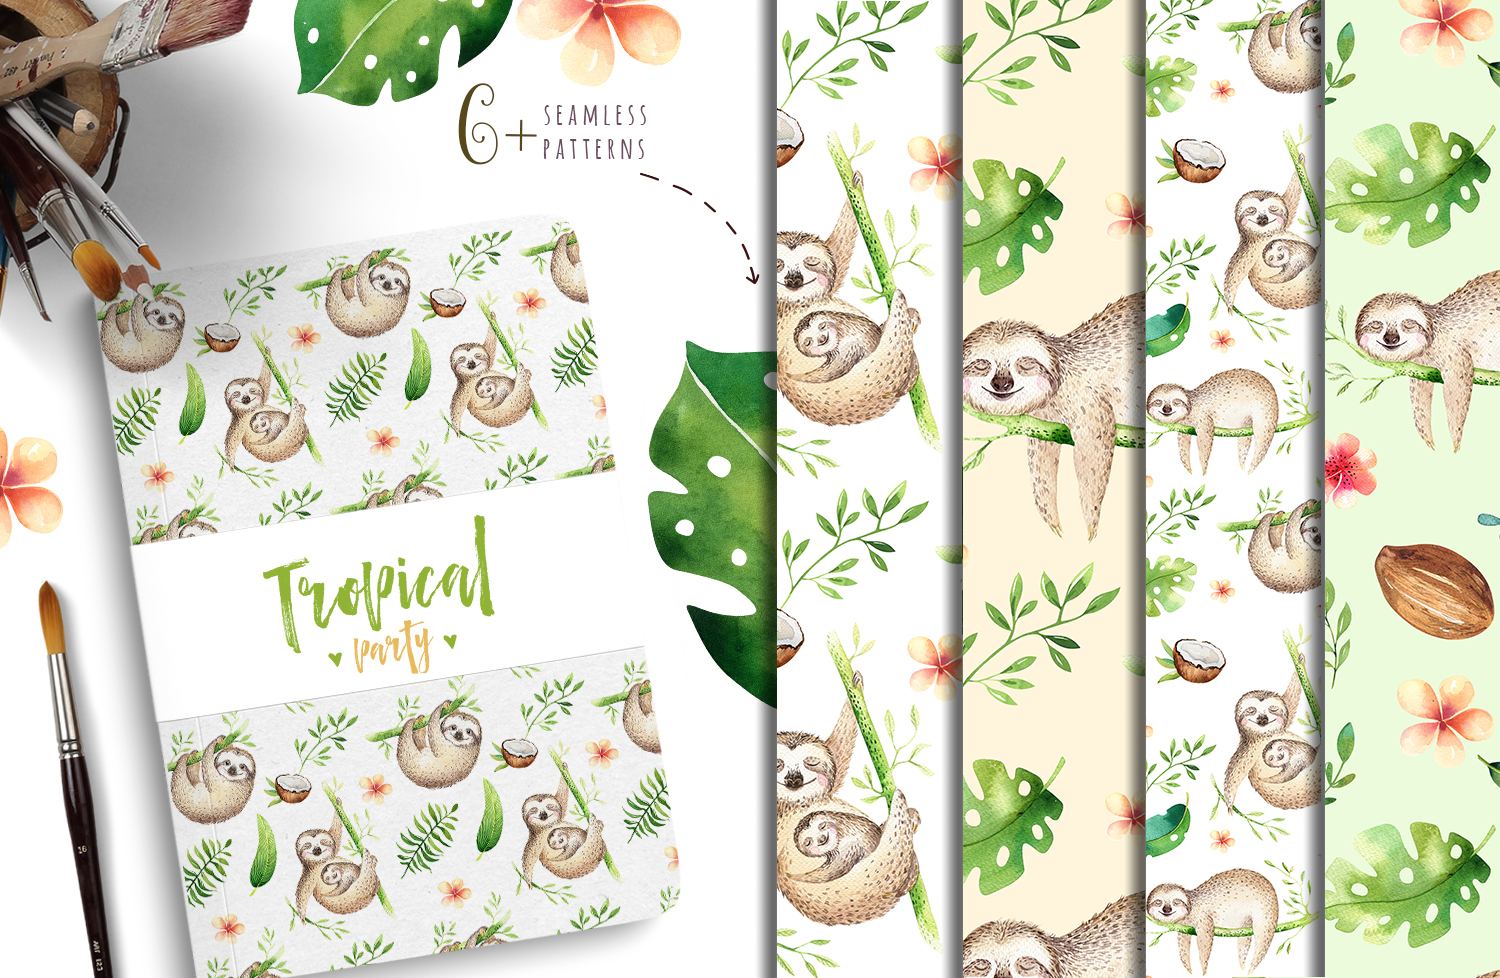 Tropical party III.Sloth collection example image 2